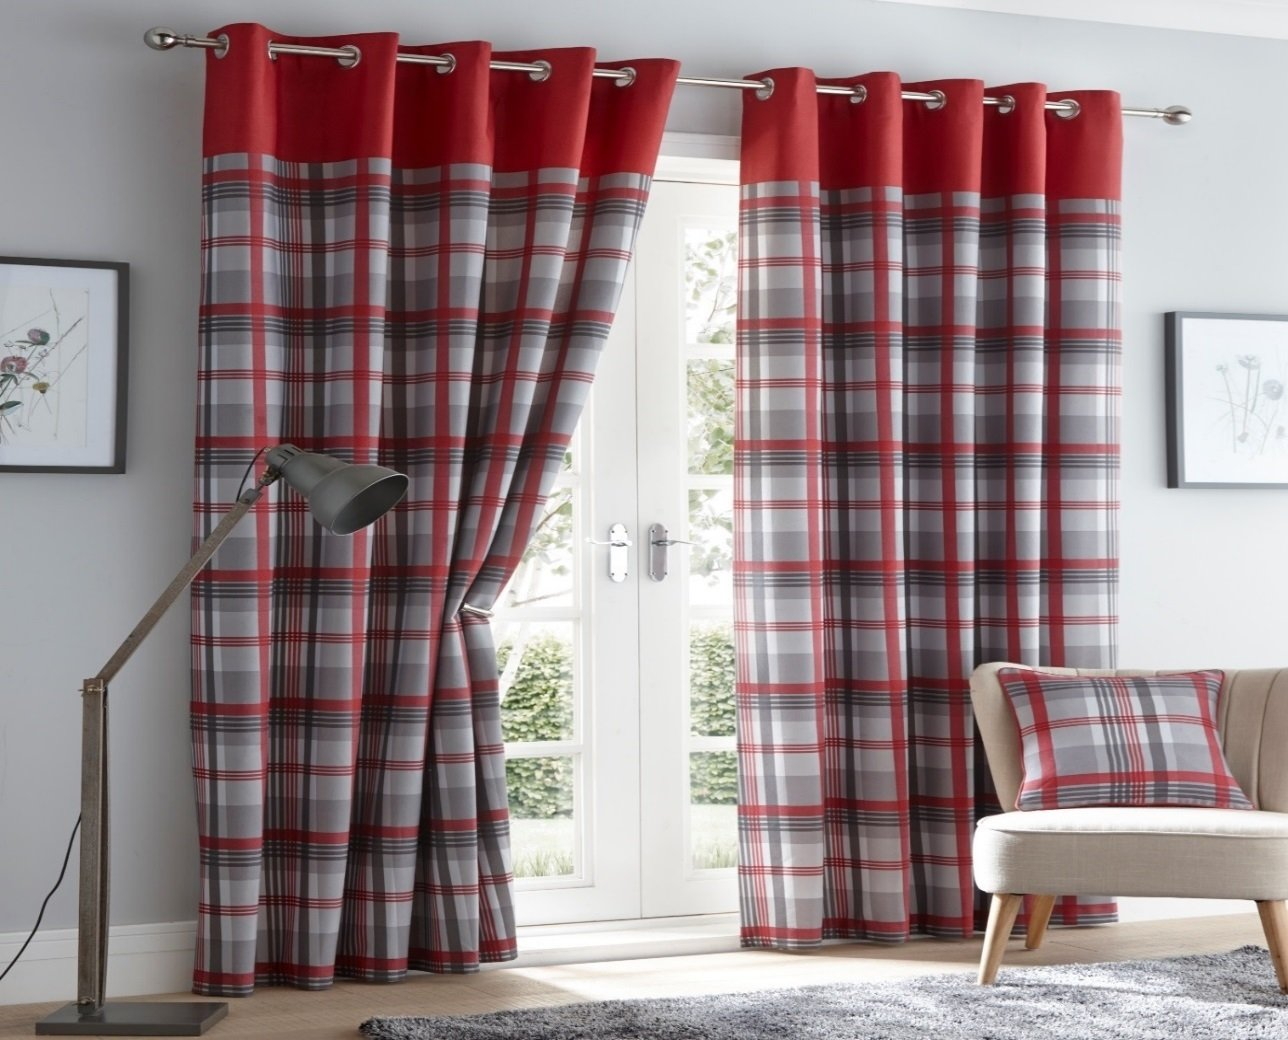 ORLEANS 66 X 90 RED GREY SLATE TARTAN CHECK EYELET READY MADE CURTAINS